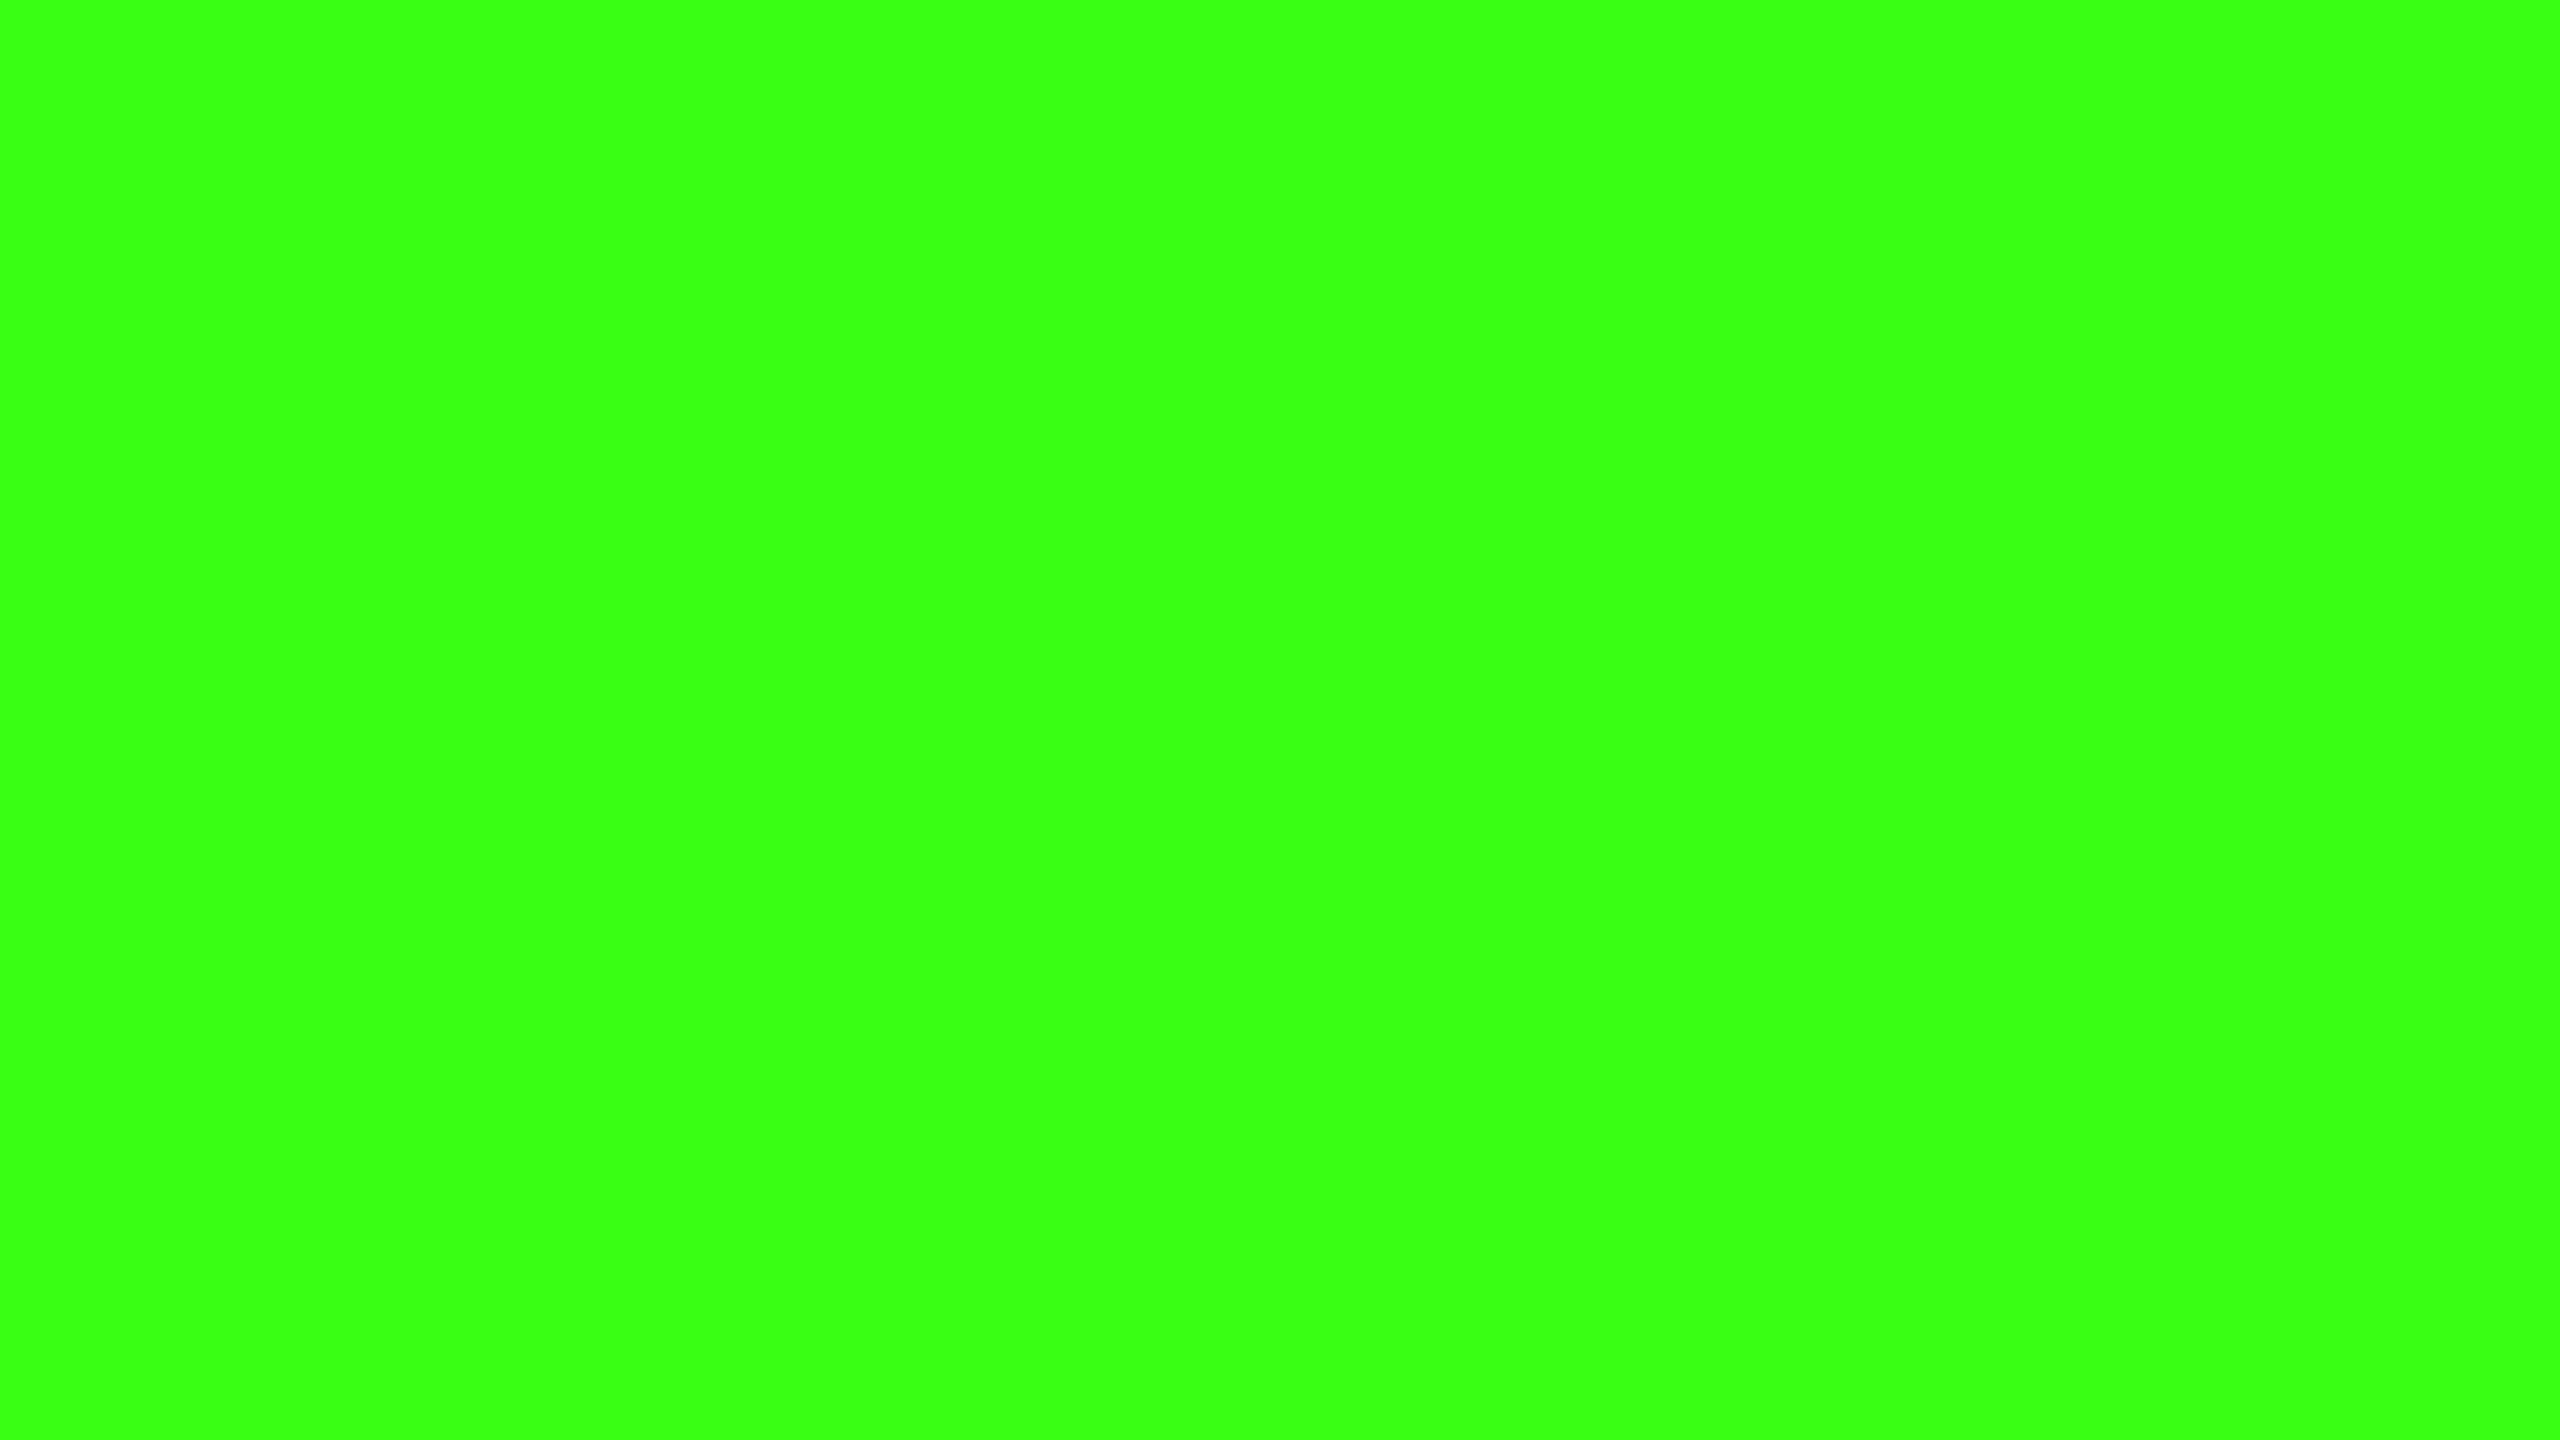 Neon Green Solid Color Wallpaper 2113 2560 x 1440   WallpaperLayercom 2560x1440